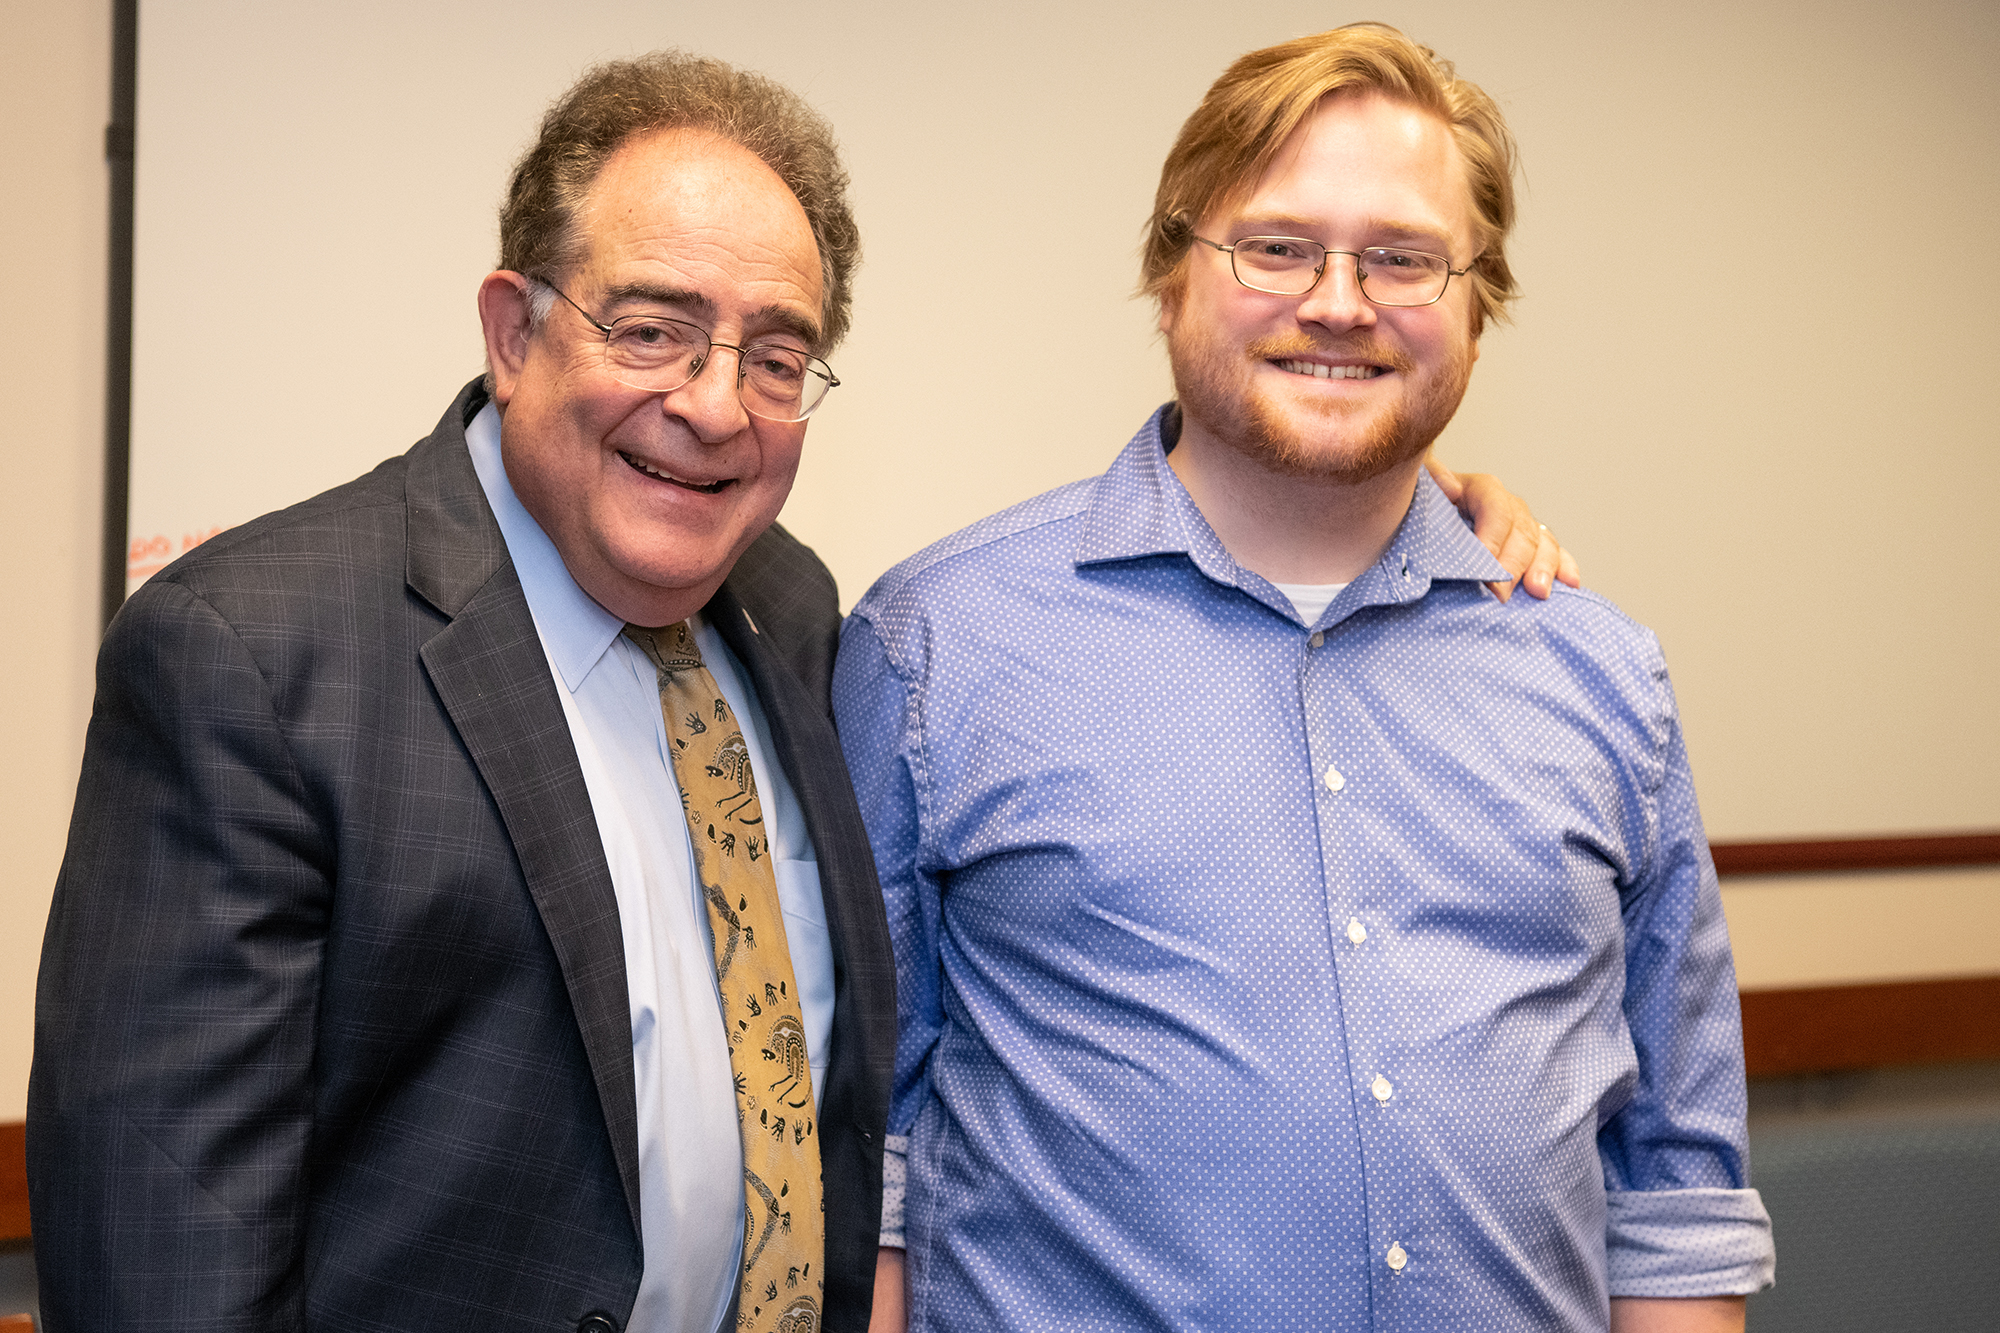 Dr. Perman and Jonah Penne